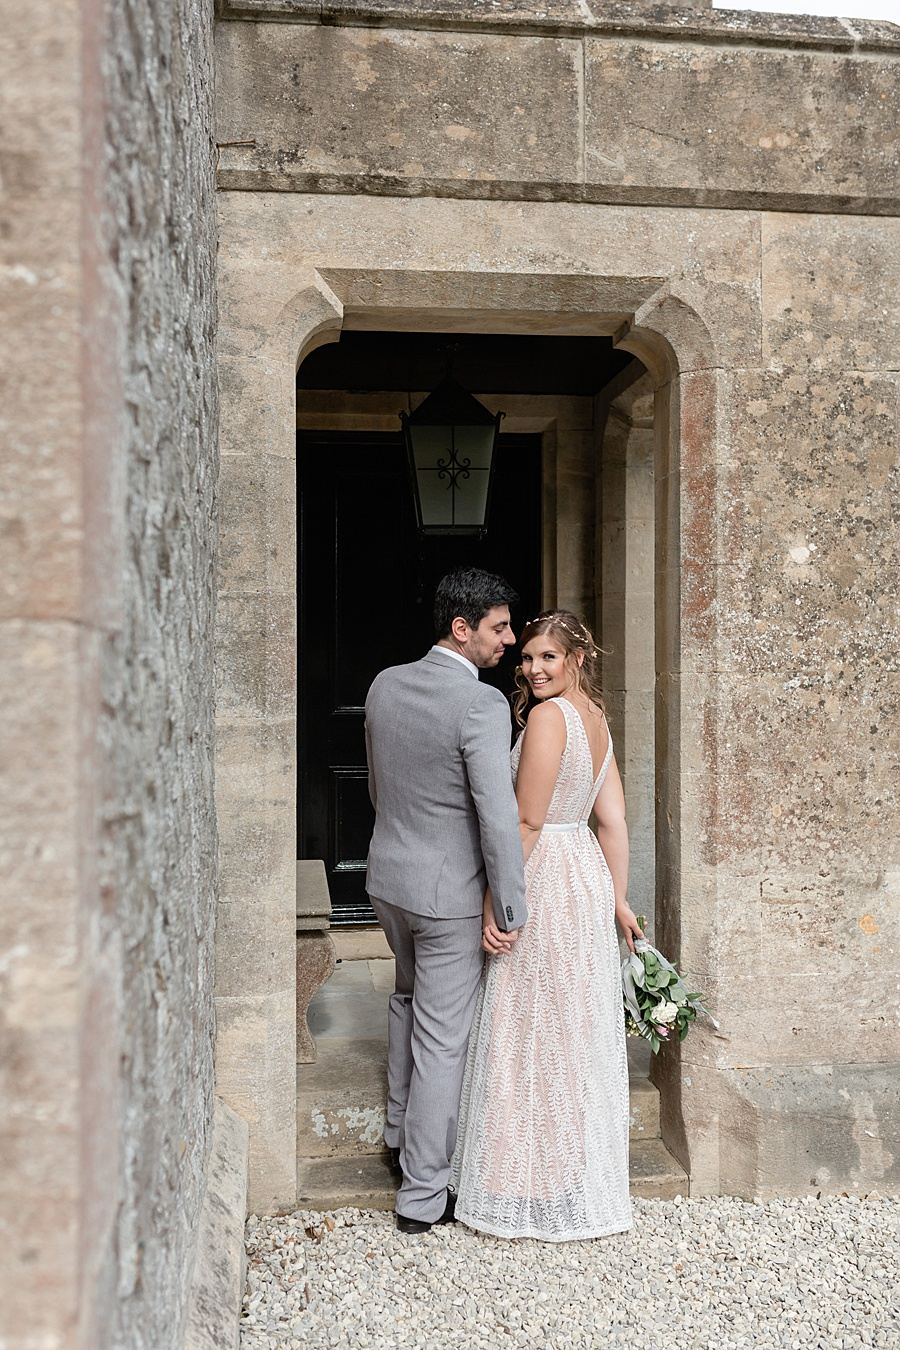 Neutral organic and minimal wedding style ideas from Kingsdown Rectory. Styling Your Wedding Your Way Images Kate Hennessey Photography (17)